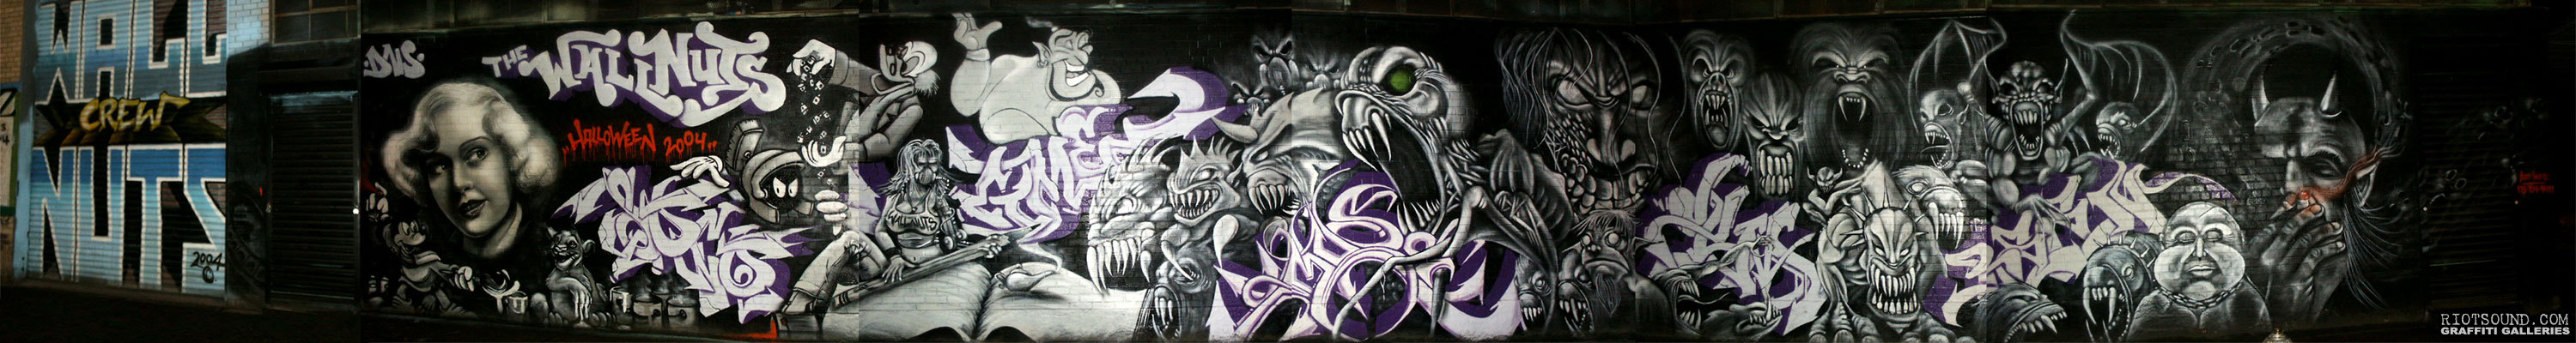 Queens Graffiti 02